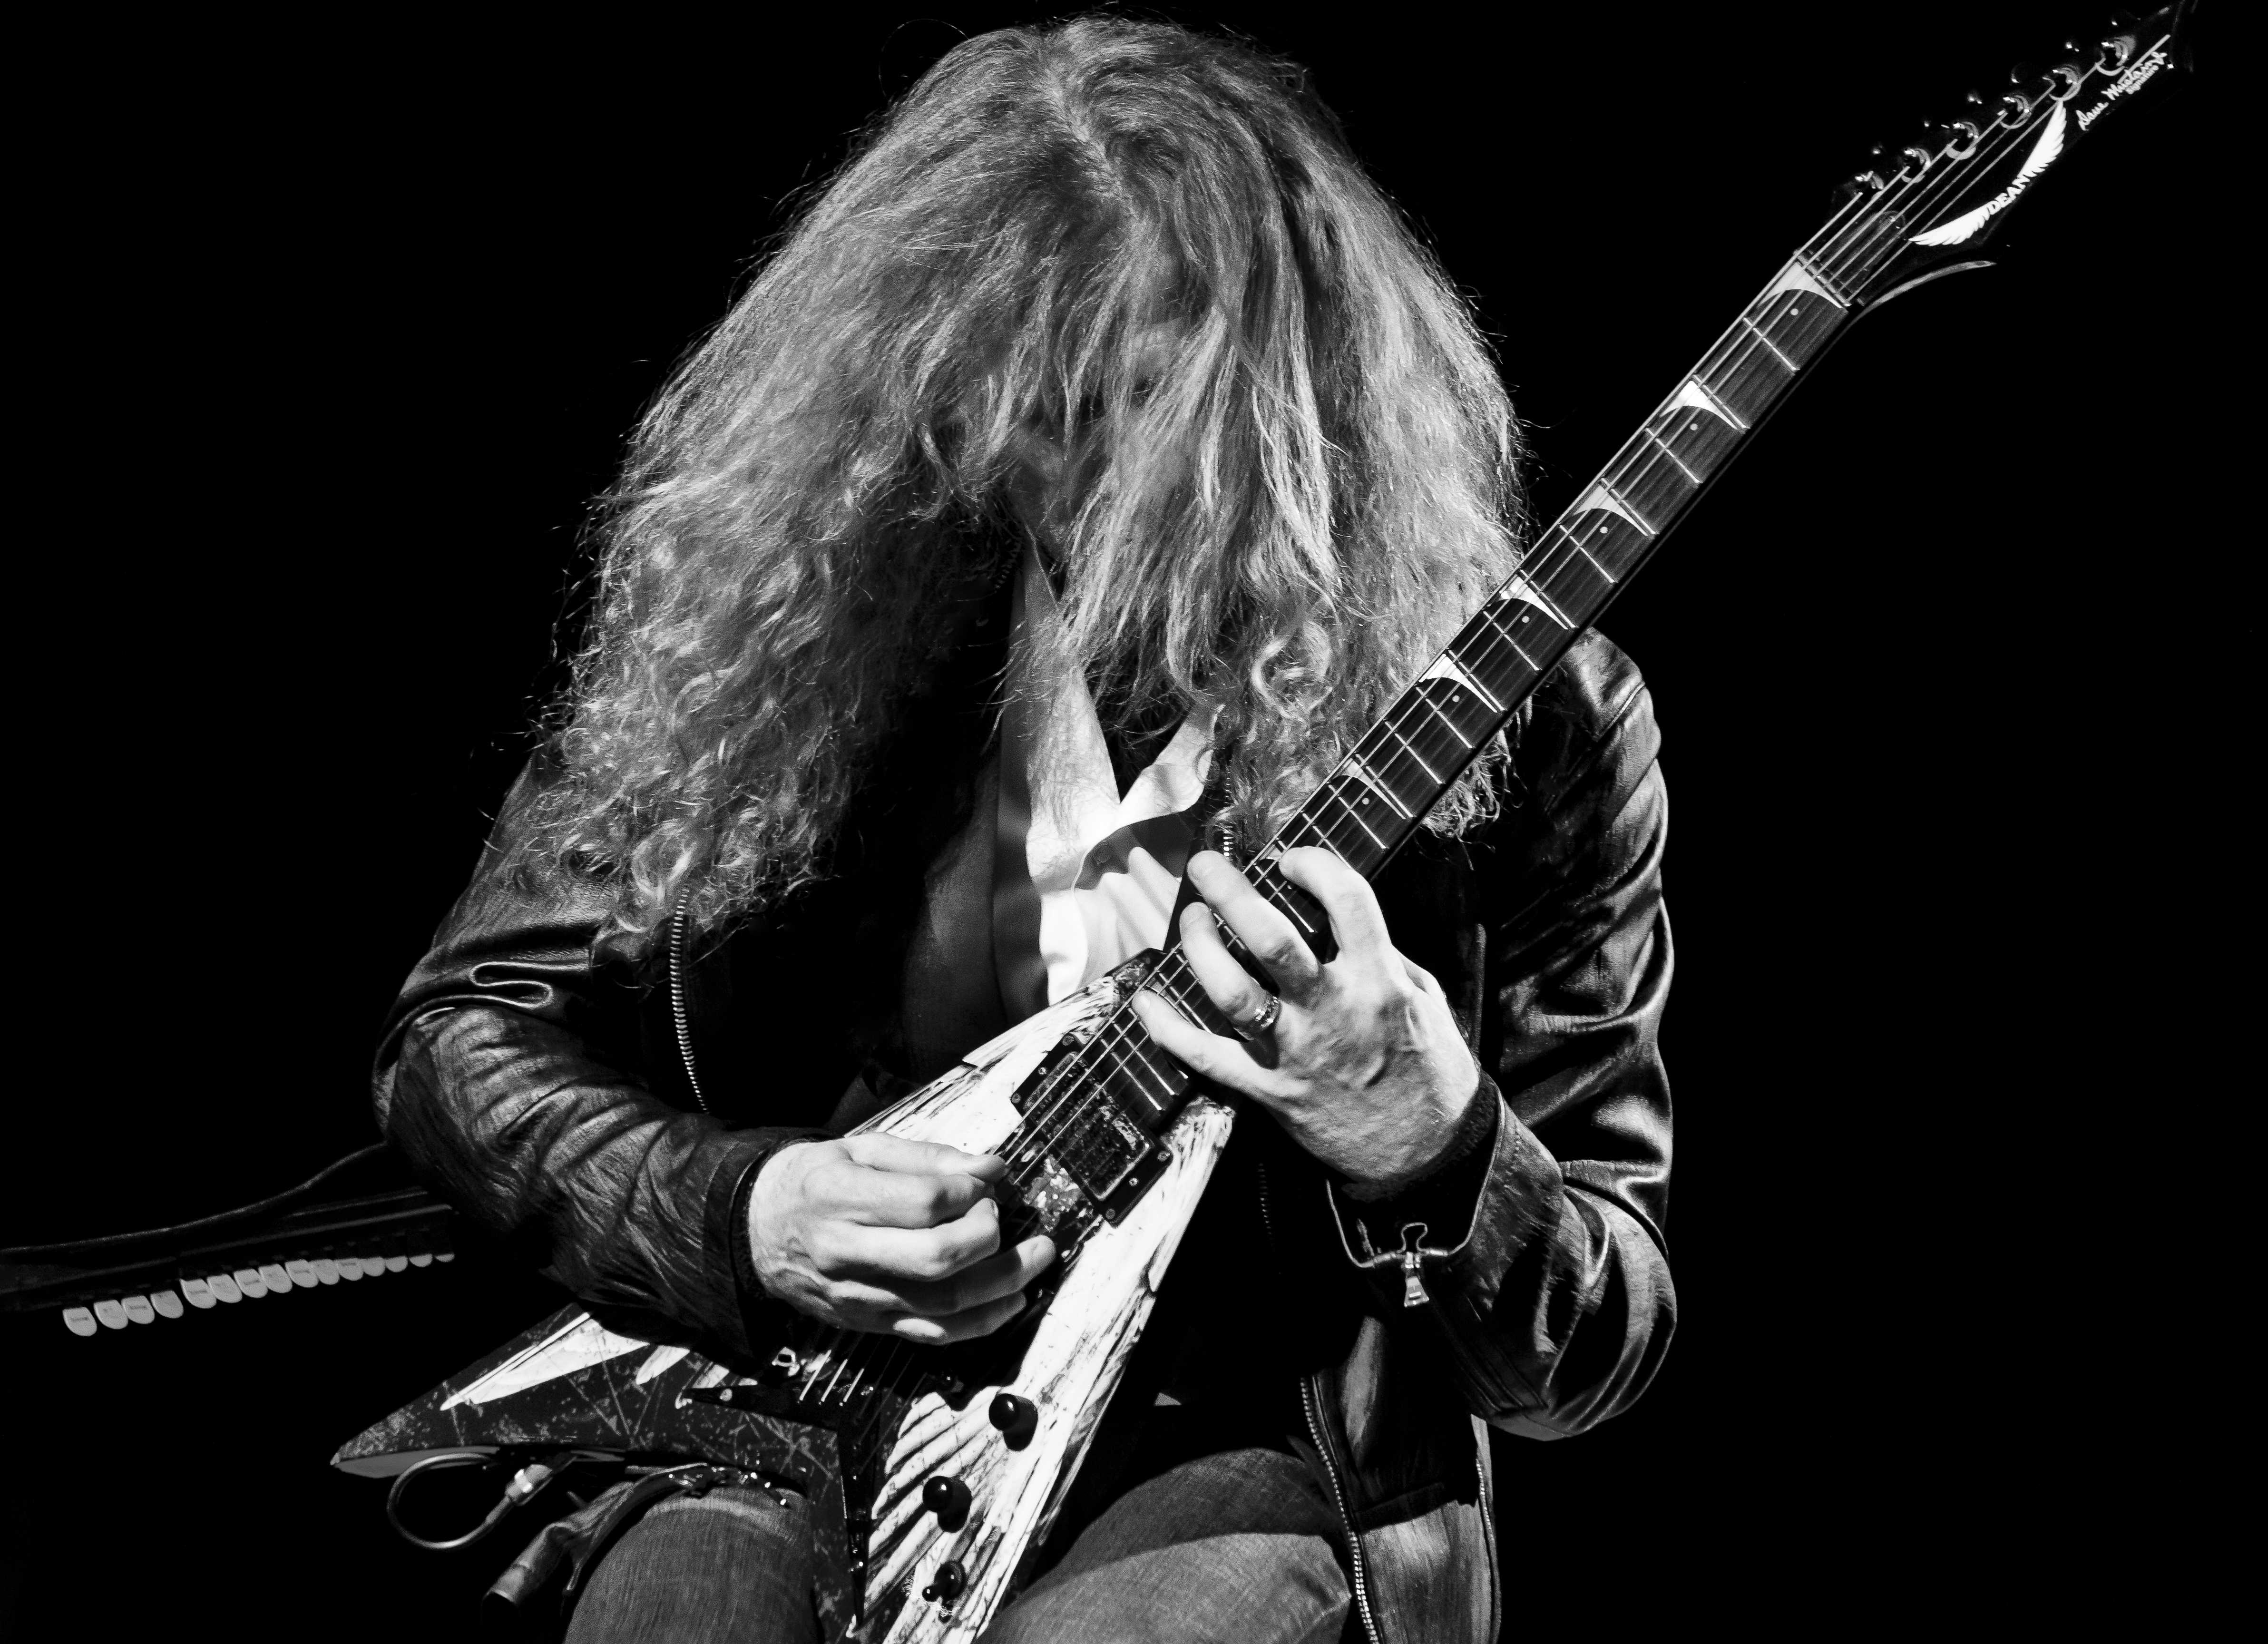 Dave Mustaine // Megadeth